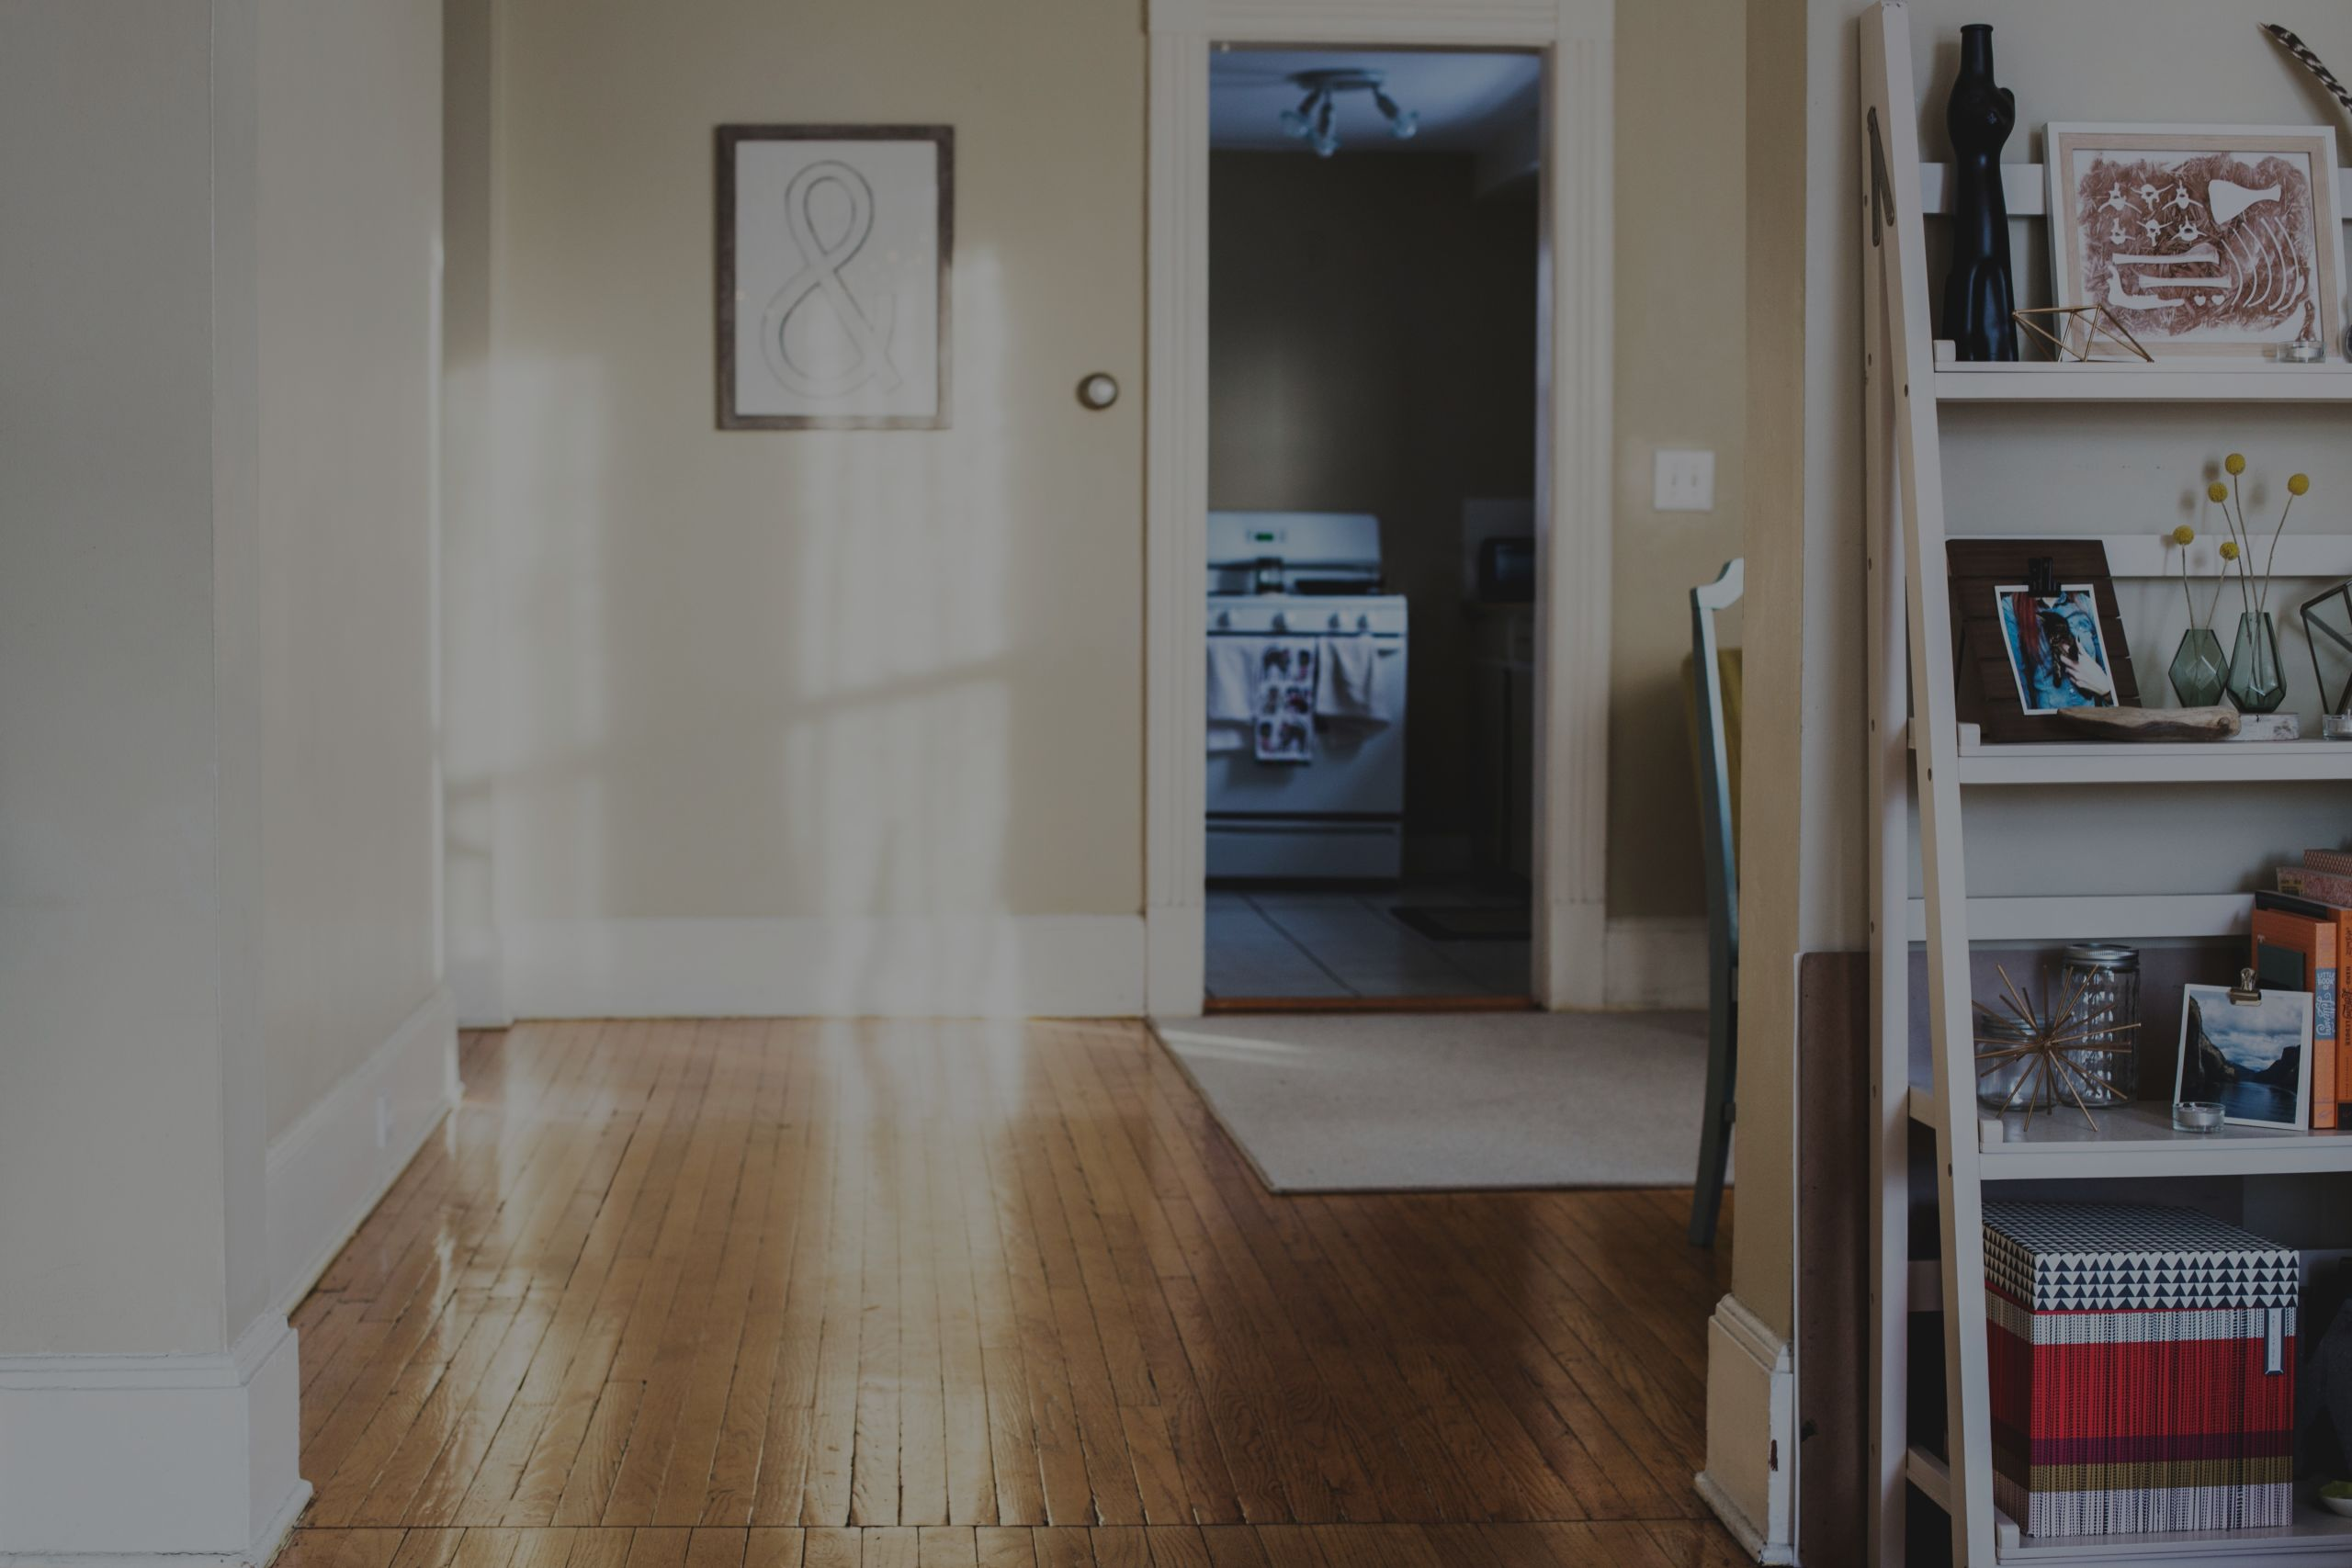 The Ultimate Home Seller's Step-By-Step Guide To Preparing For Showings